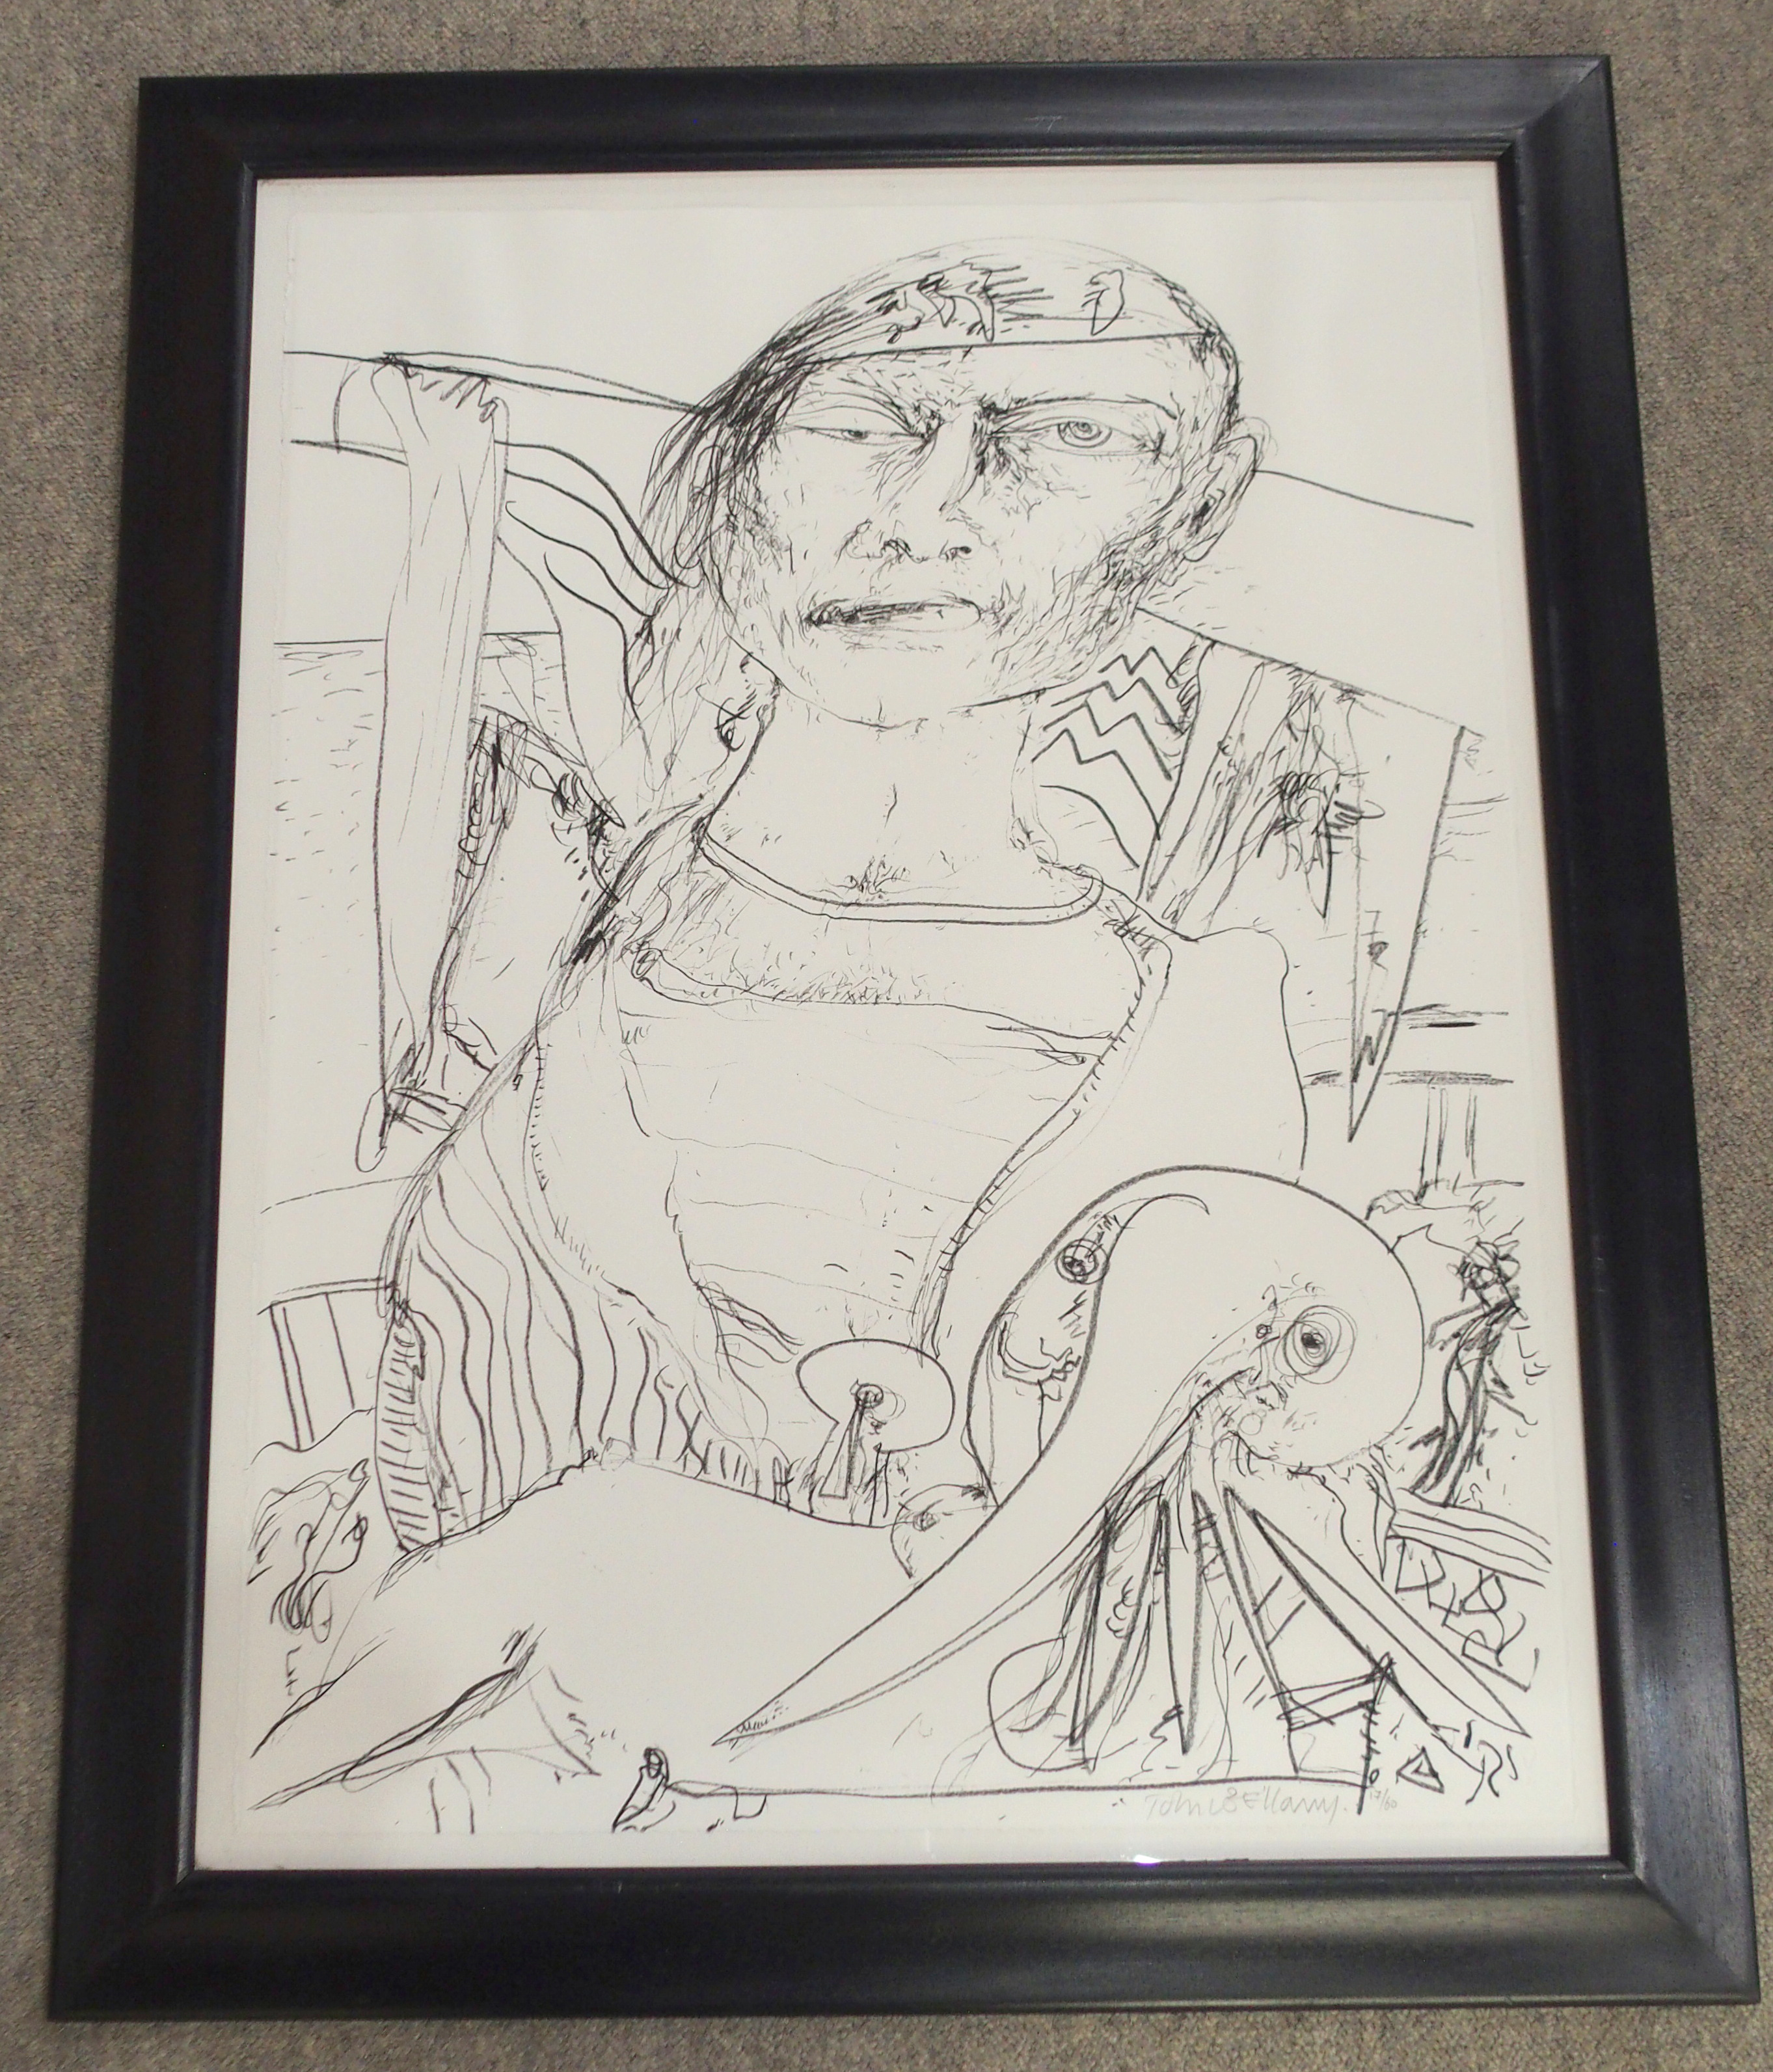 •JOHN BELLANY CBE, RA, HRSA, LLD (LON) (SCOTTISH 1942-2013) OLD MAN AND THE SEA Lithograph on paper, - Image 2 of 3